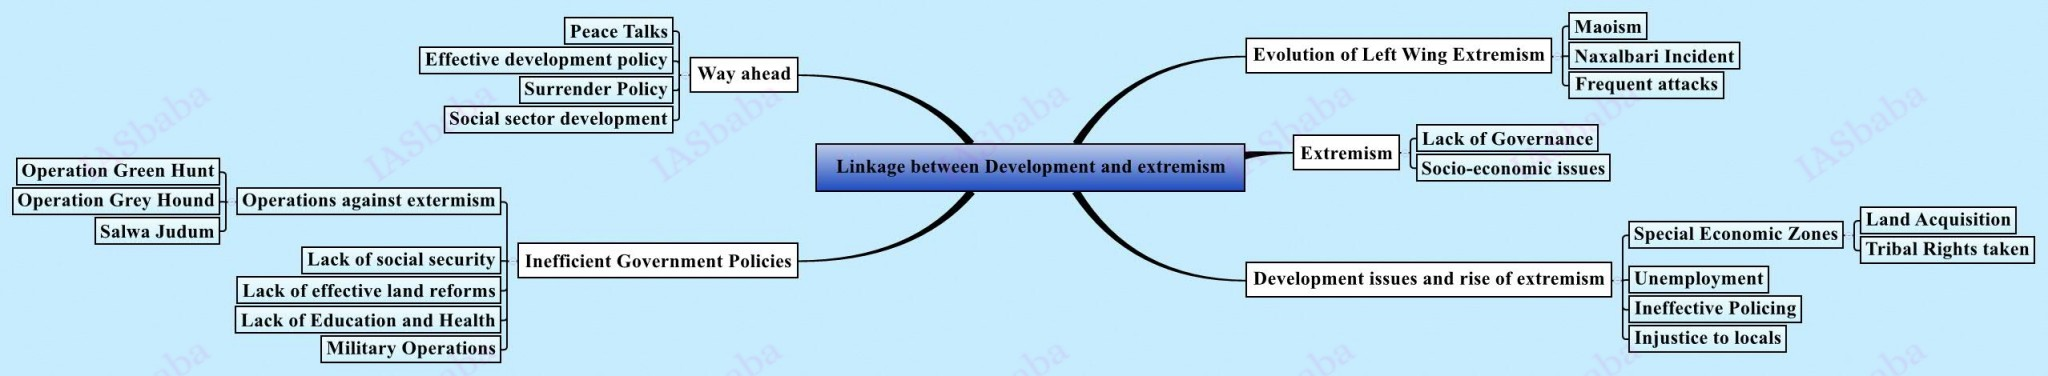 Linkage between Development and extremism